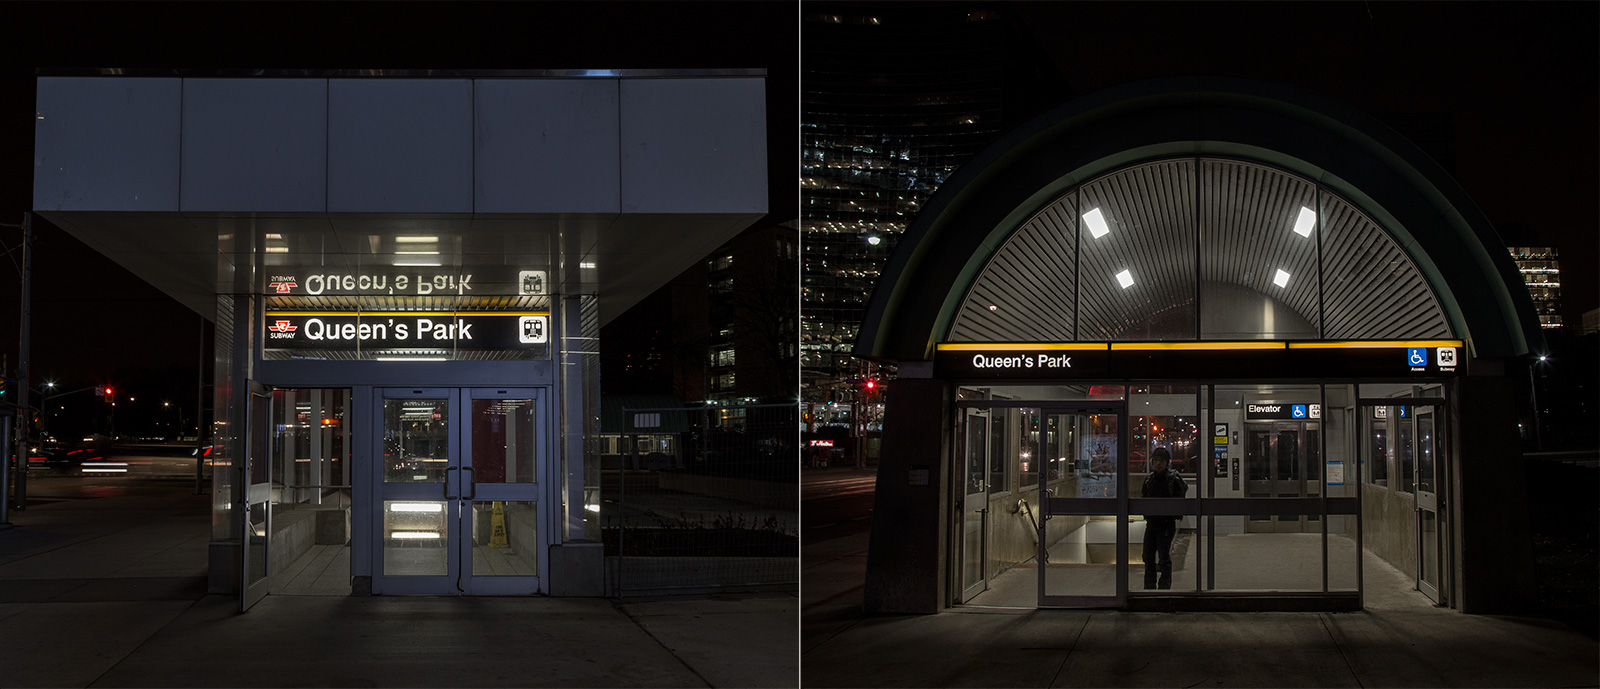 Photo 20131203. New vs. old subway entrances at TTC's Queen's Park station, Toronto.